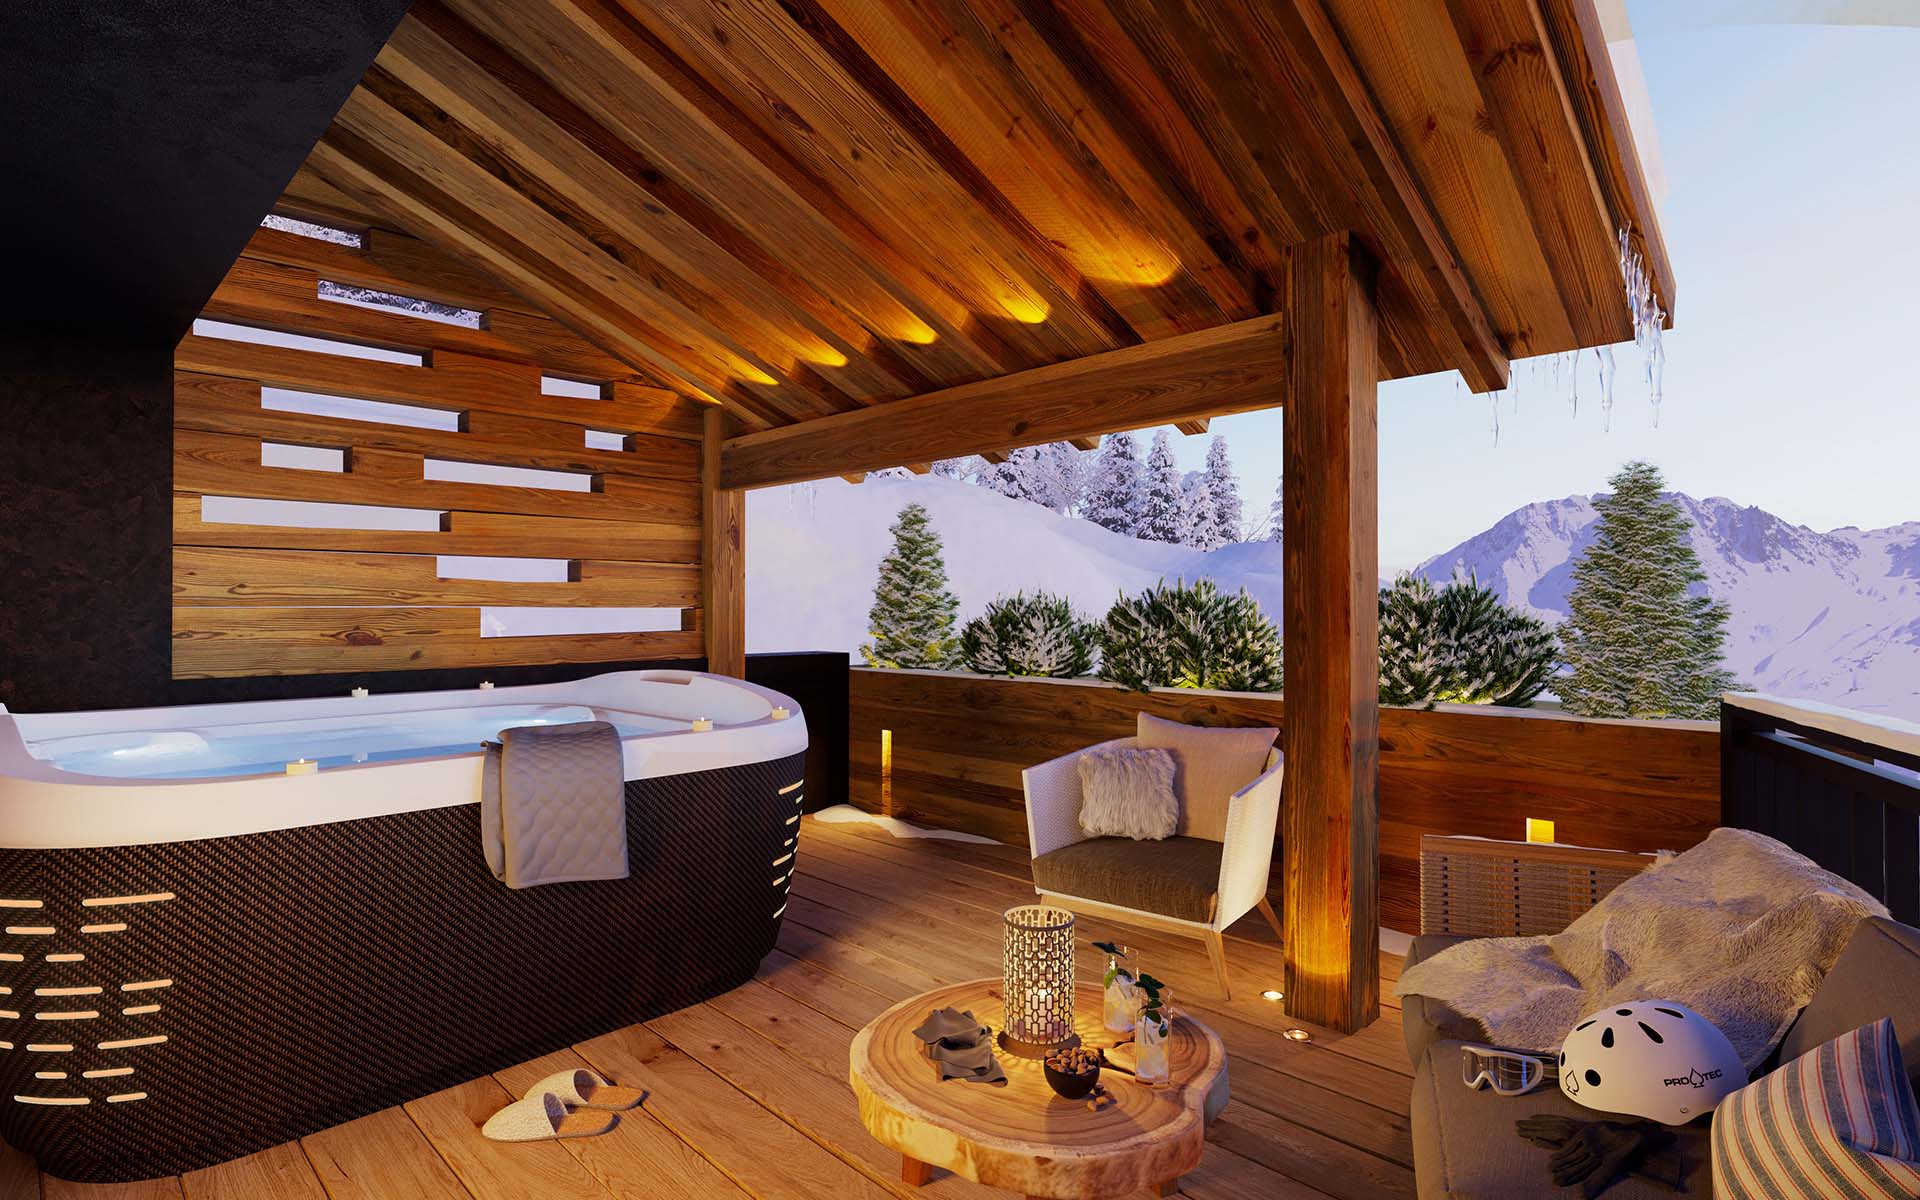 3D Rendering of a terrace perspective of a luxurious chalet created by our 3D computer graphic designers specialized in real estate.